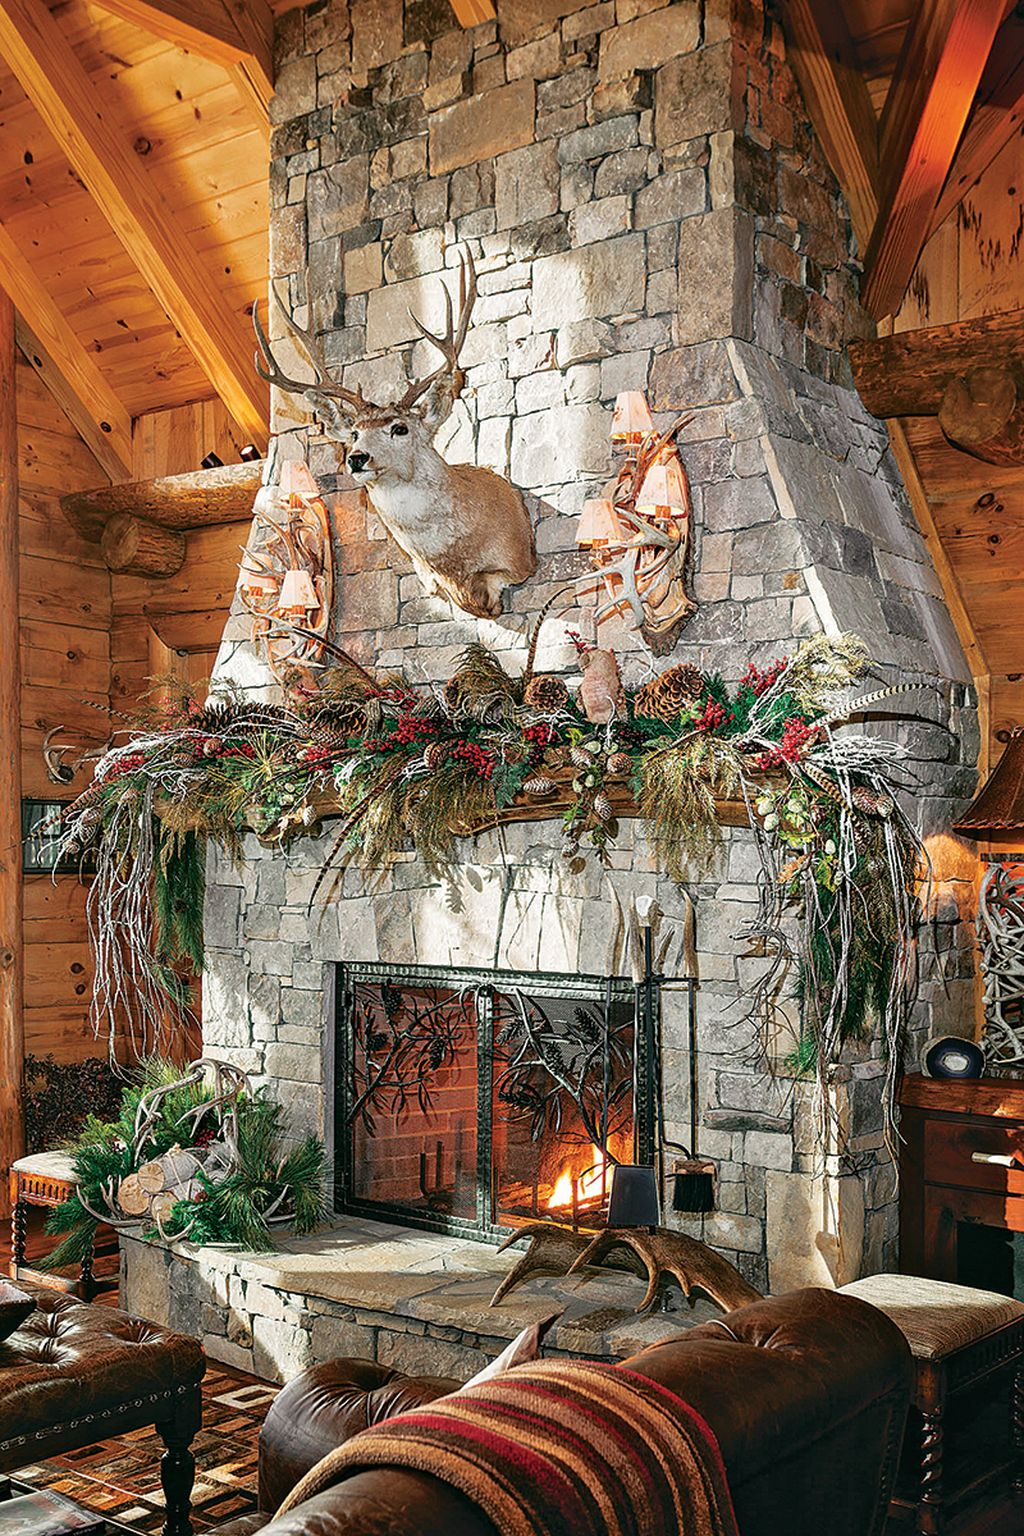 Inspiring Rustic Christmas Fireplace Ideas To Makes Your Home Warmer 69